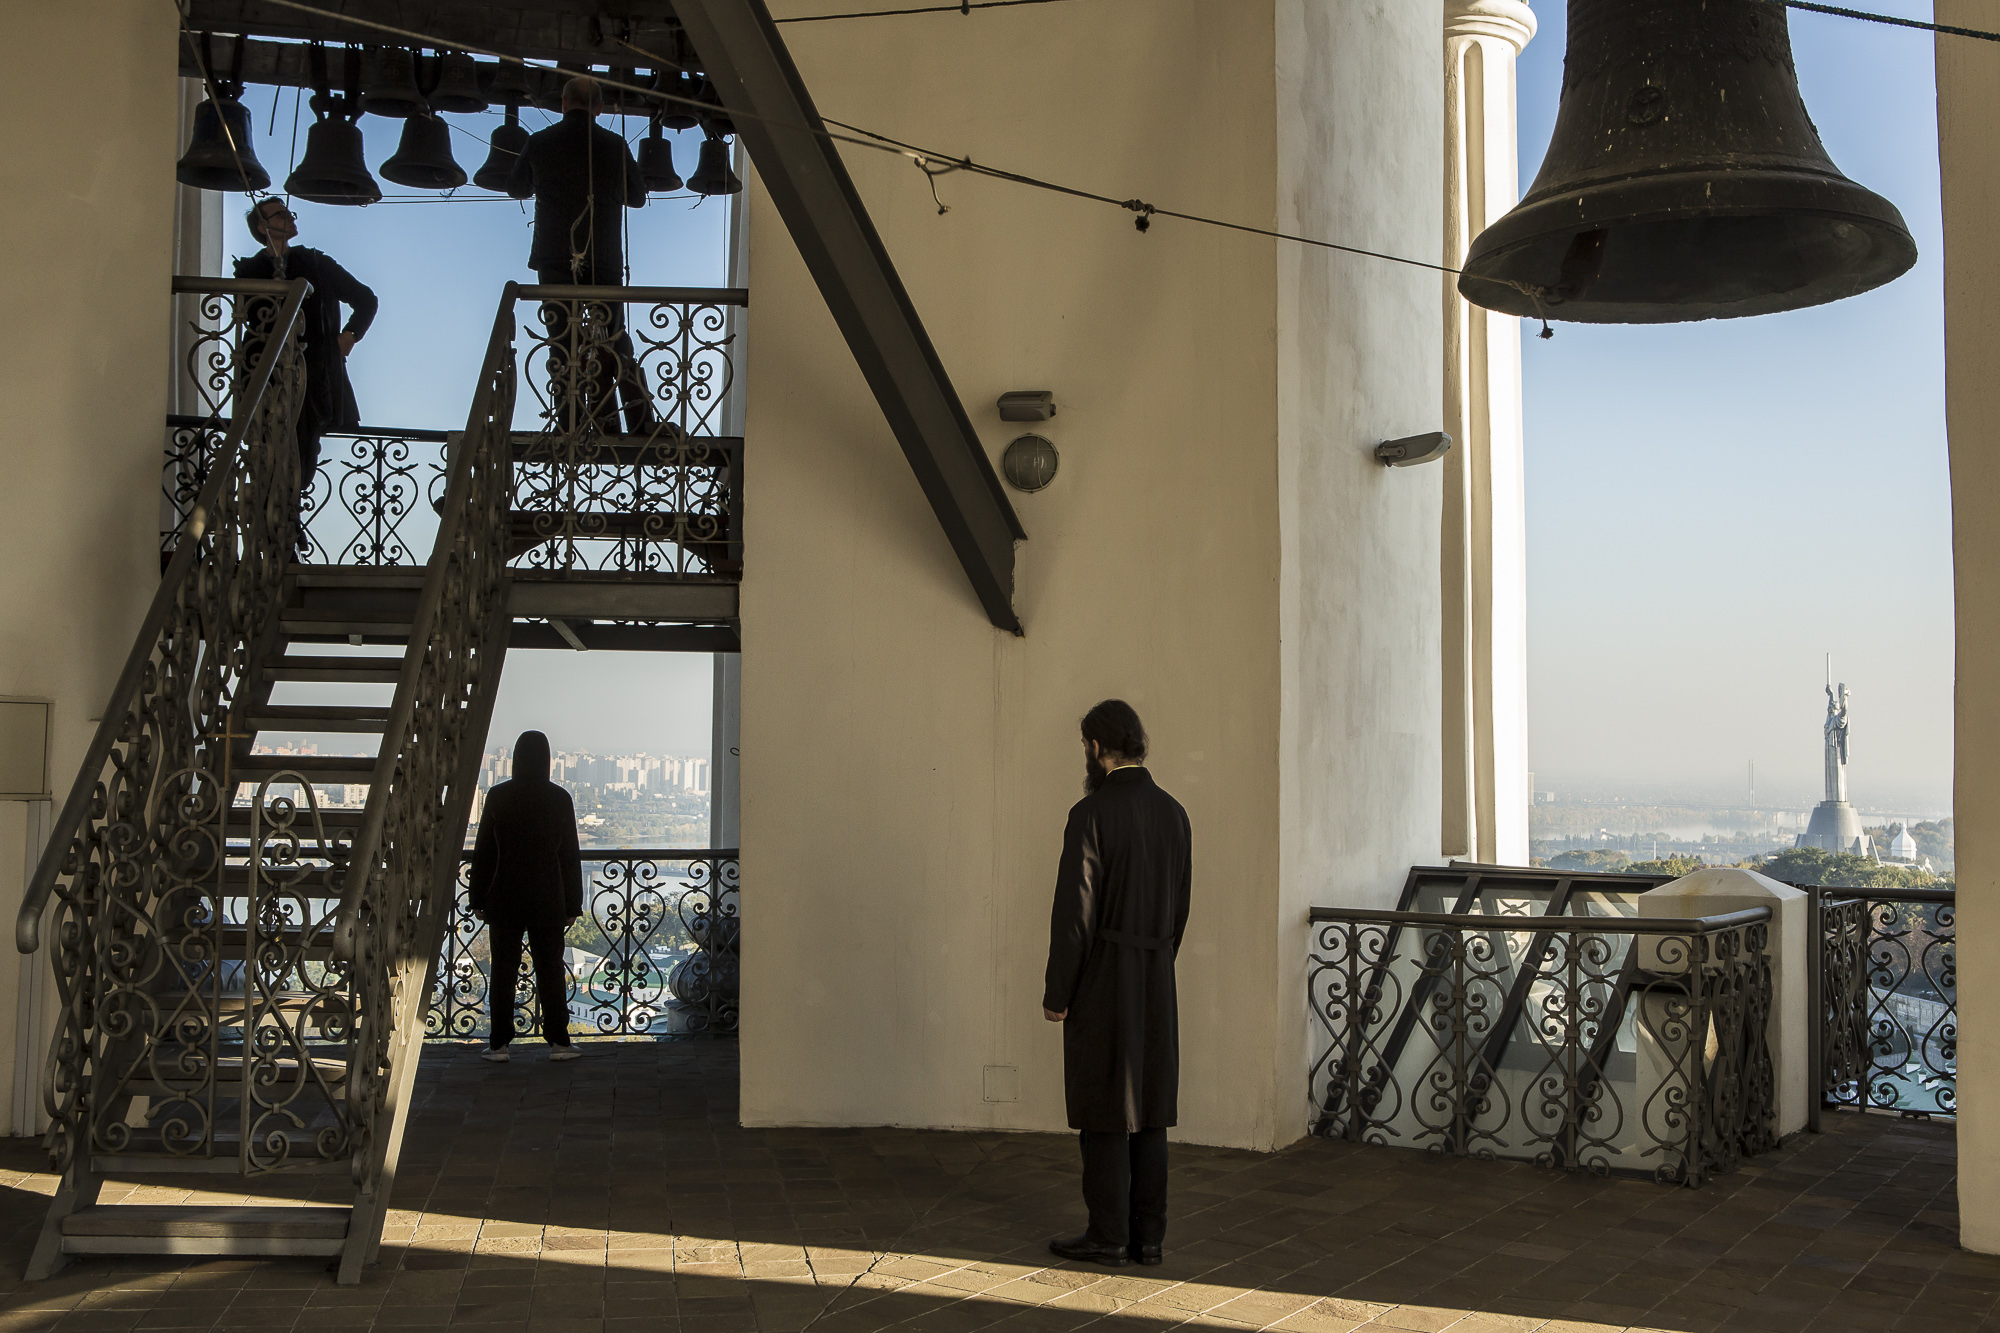 People listen to the ringing of the bells inside the Great Lavra Bell Tower at the Kyiv-Pechersk Lavra on Wednesday, October 10, 2018 in Kyiv, Ukraine.